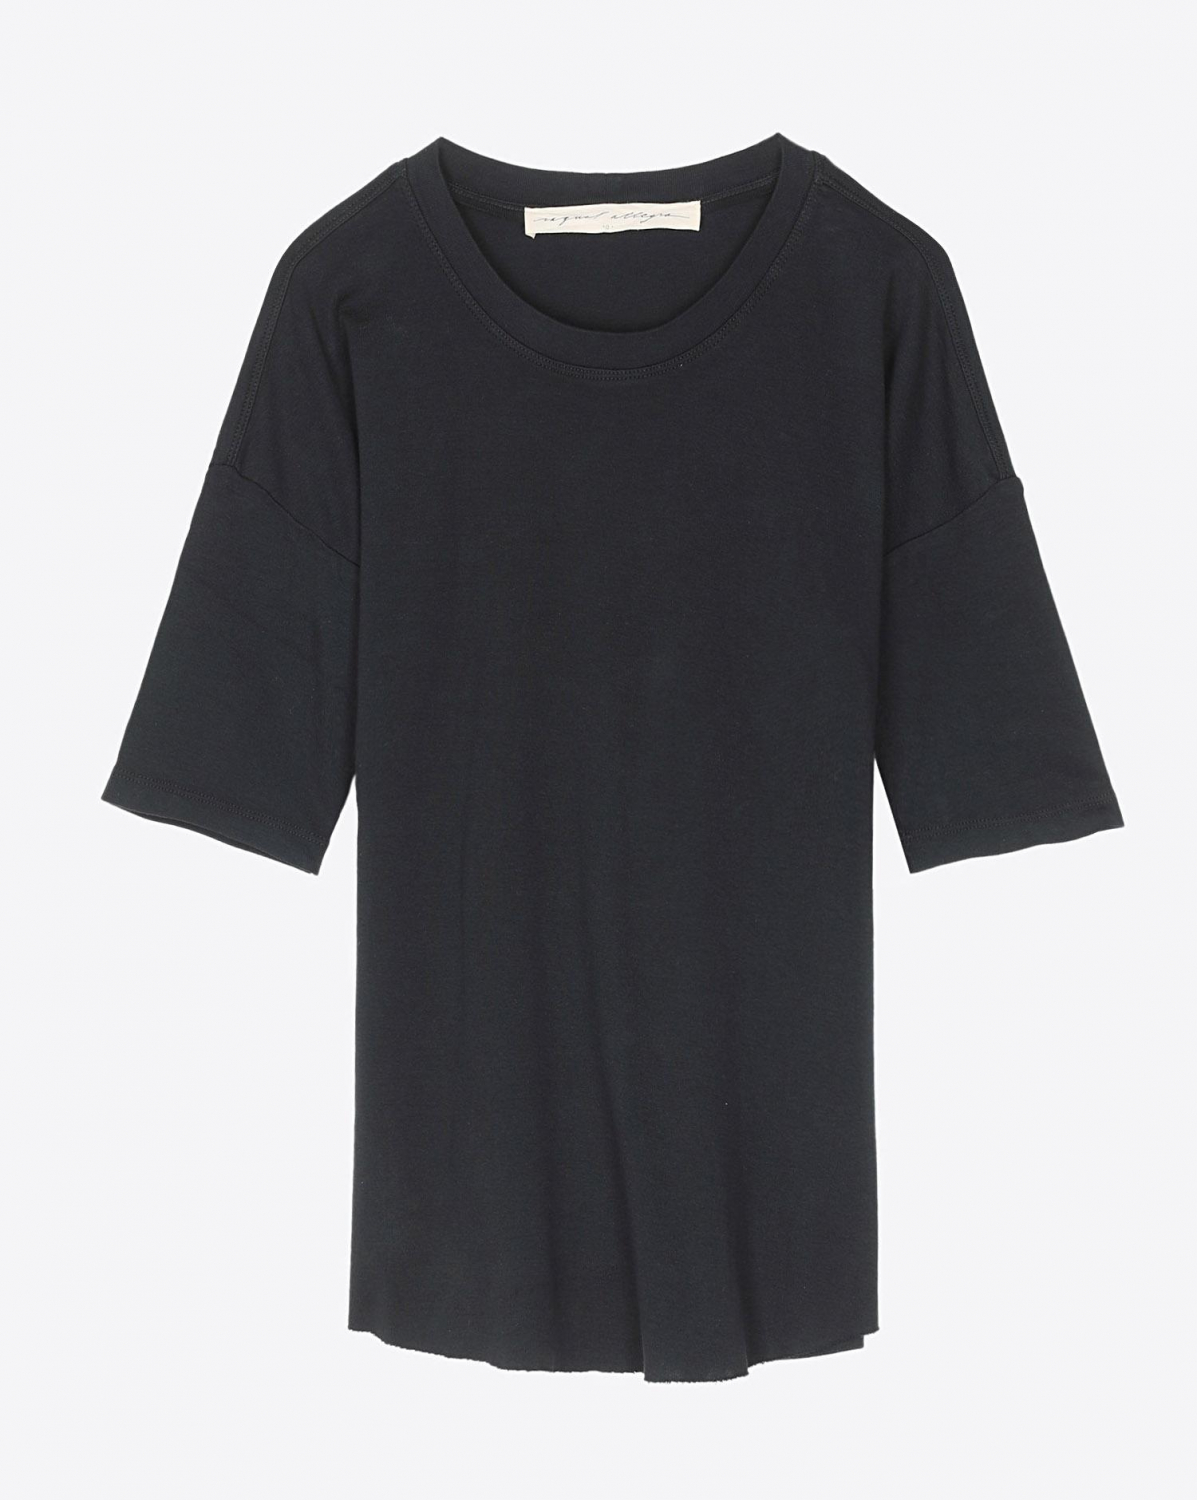 Raquel Allegra Basic Tee - Black